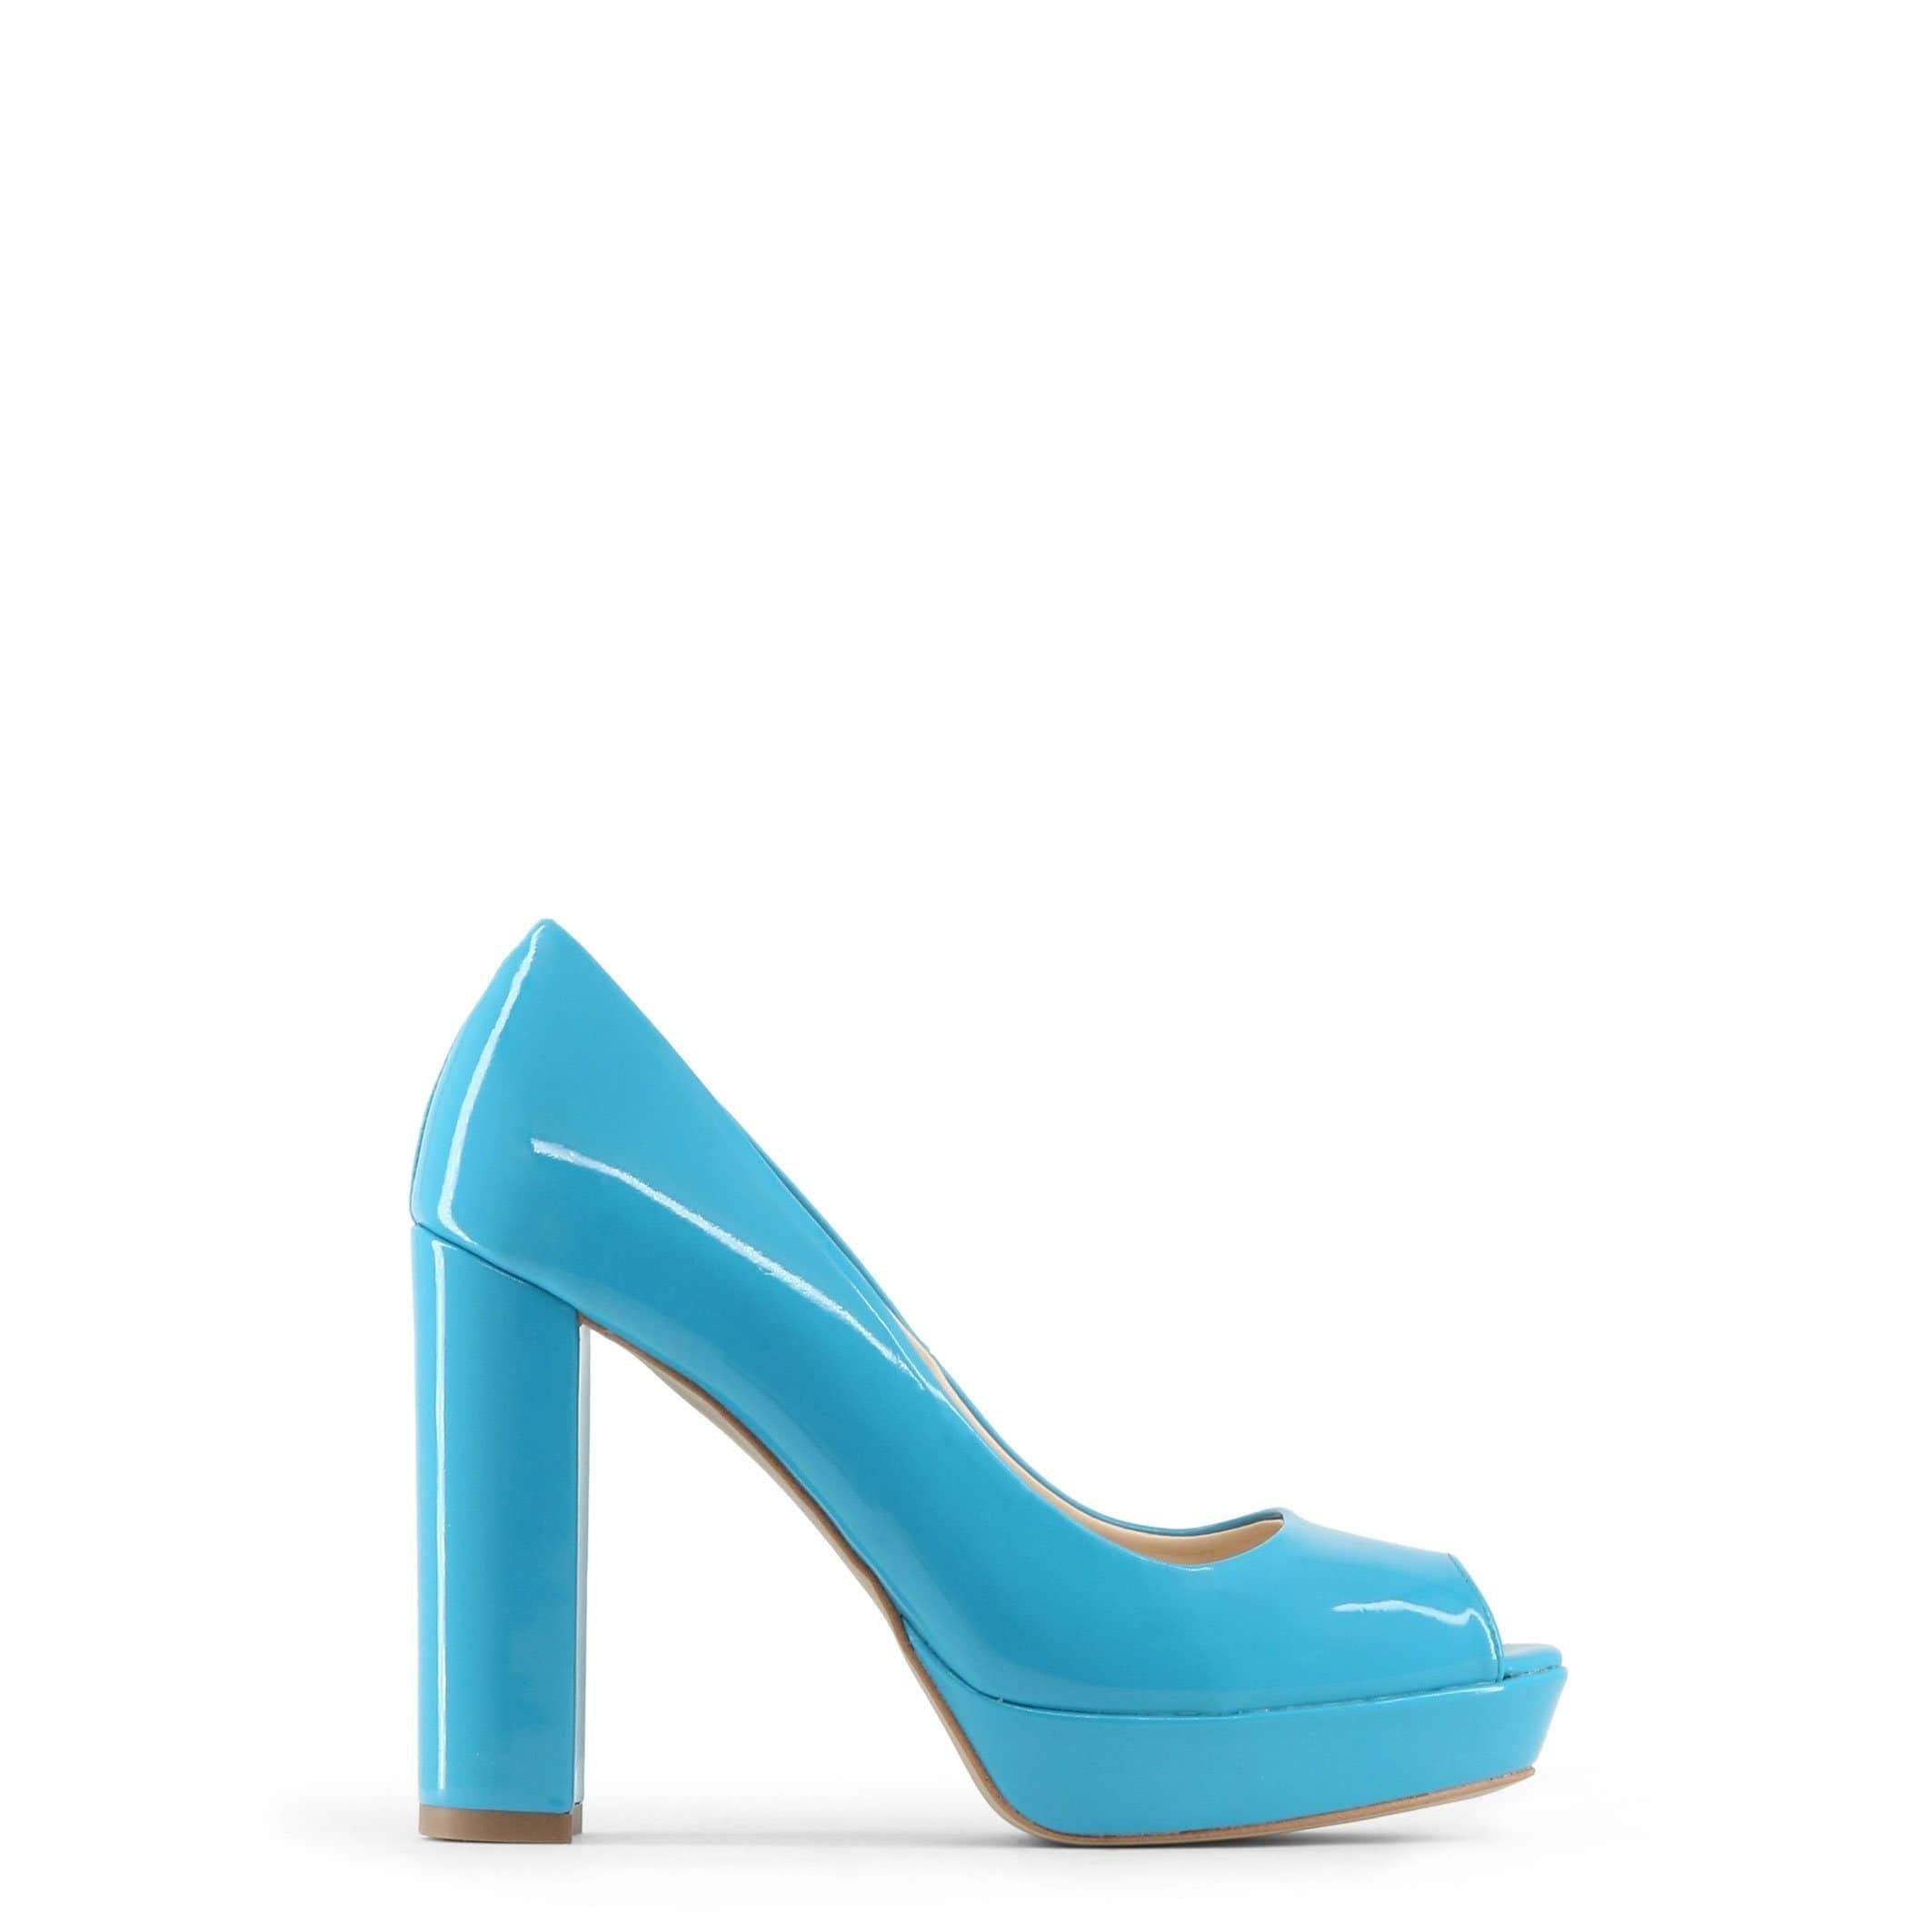 Made in Italia Shoes Pumps & Heels blue / 36 Made in Italia - MIA